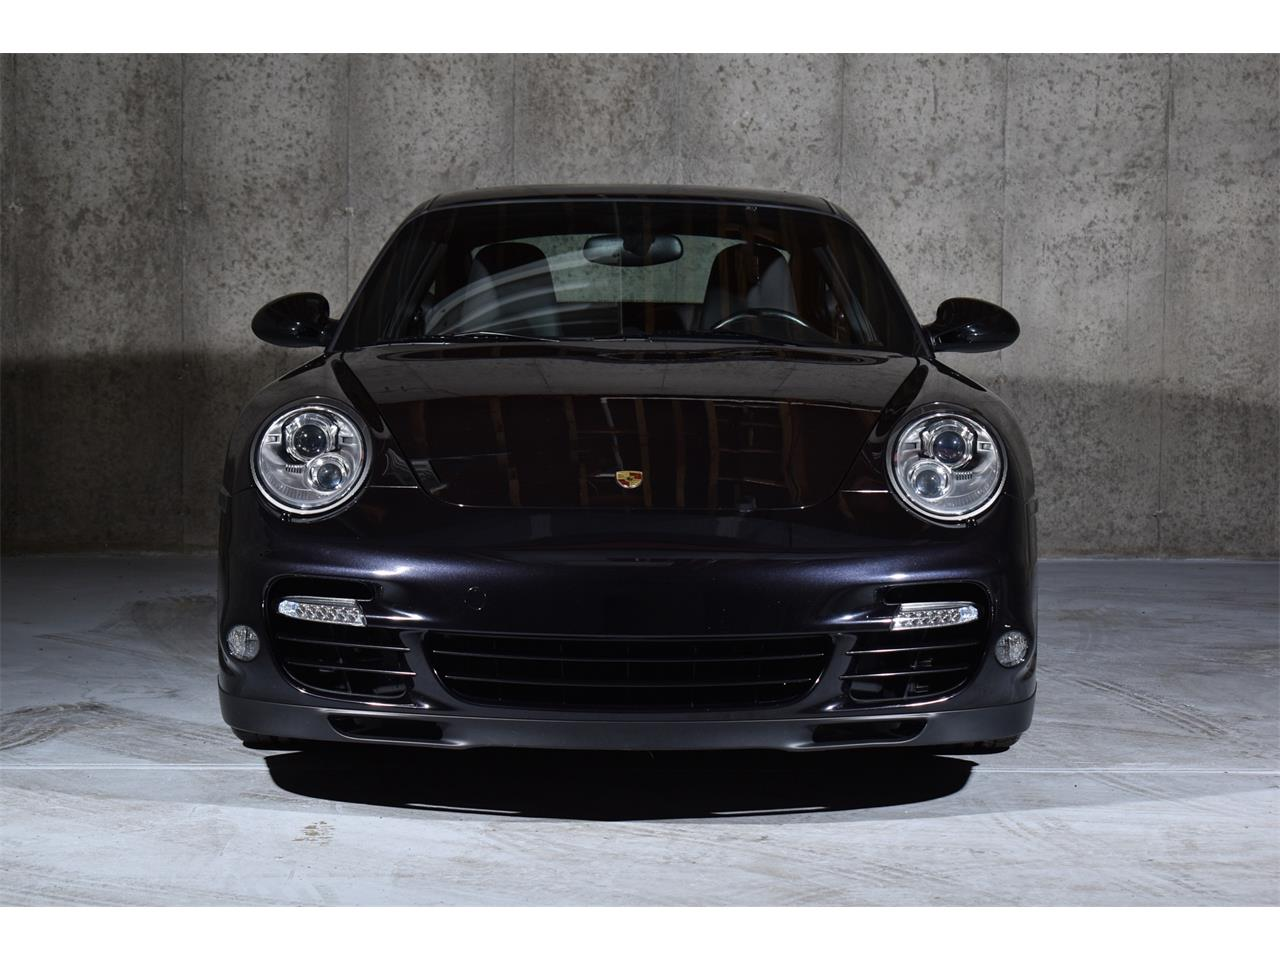 2011 Porsche 911 for sale in Valley Stream, NY – photo 6